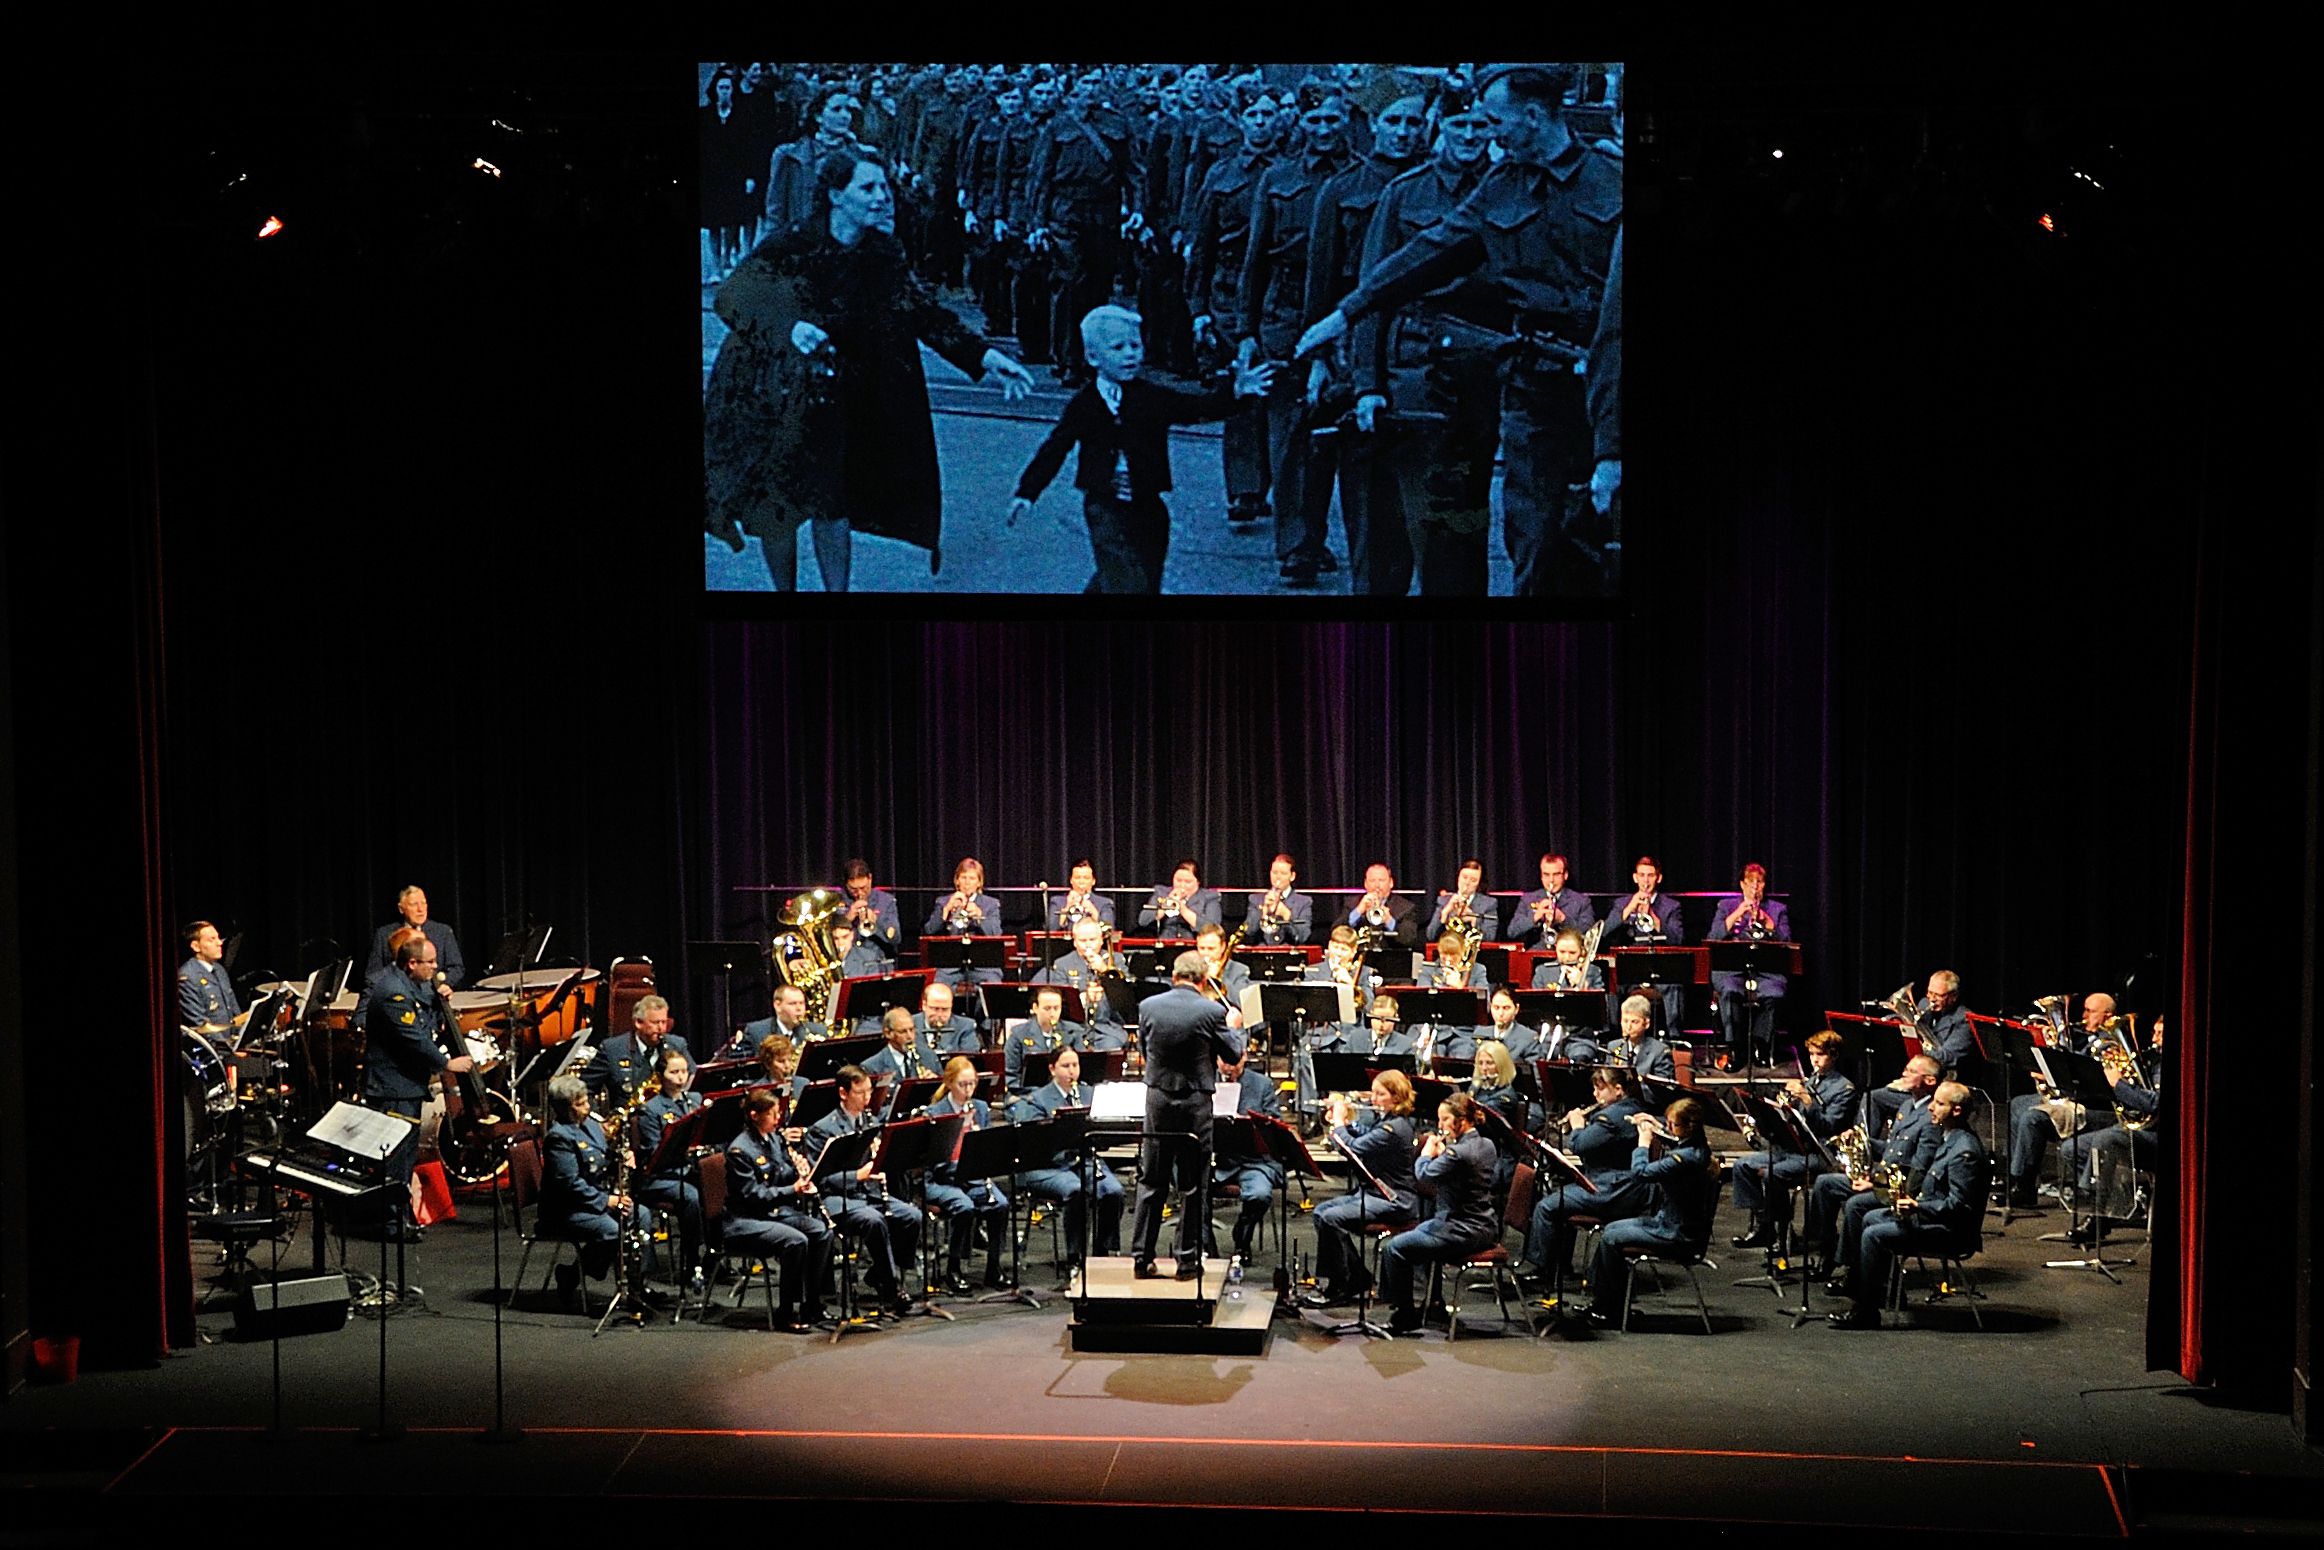 "In November 2014, the 22 Wing Volunteer Band performs during the wing's annual musical tribute in North Bay, Ontario. The backdrop for the performance is the iconic 1940 Canadian photograph ""Wait for Me Daddy"", by Claude P. Dettloff. The charity sponsor and beneficiary for the concert, which included a number of performers, was the Special Olympics Ontario 2015 Provincial Winter Games. PHOTO: Corporal Joseph Morin"